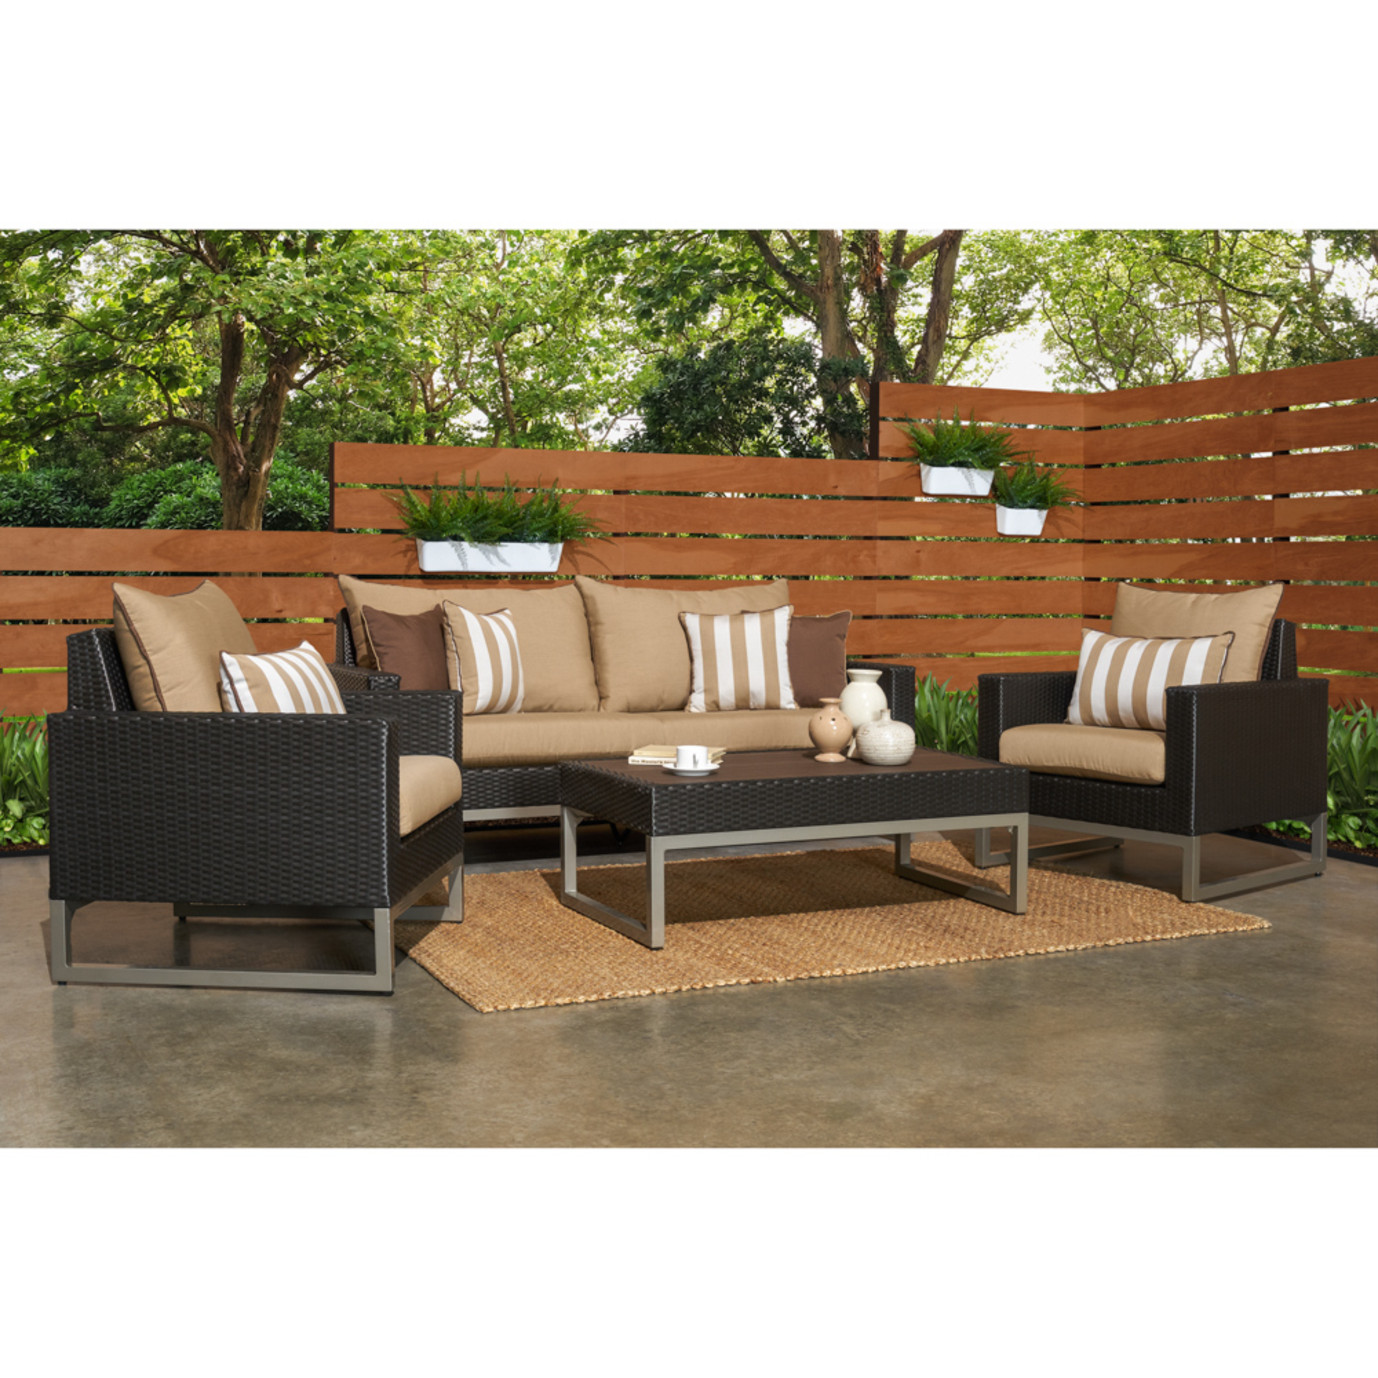 Milo™ Espresso 4 Piece Seating Set - Maxim Beige